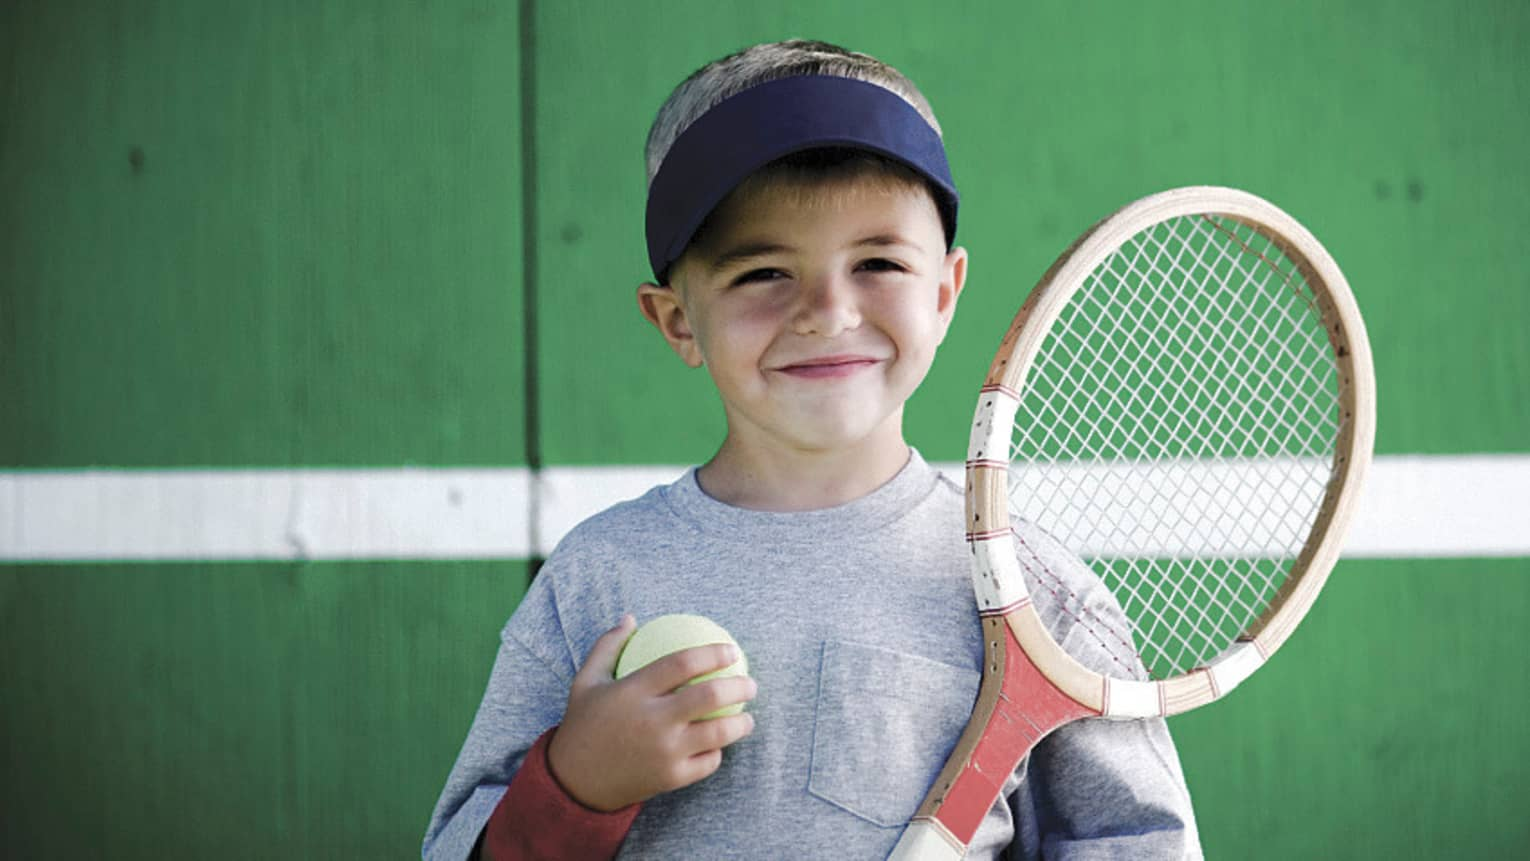 Smiling young boy holding tennis racket, ball